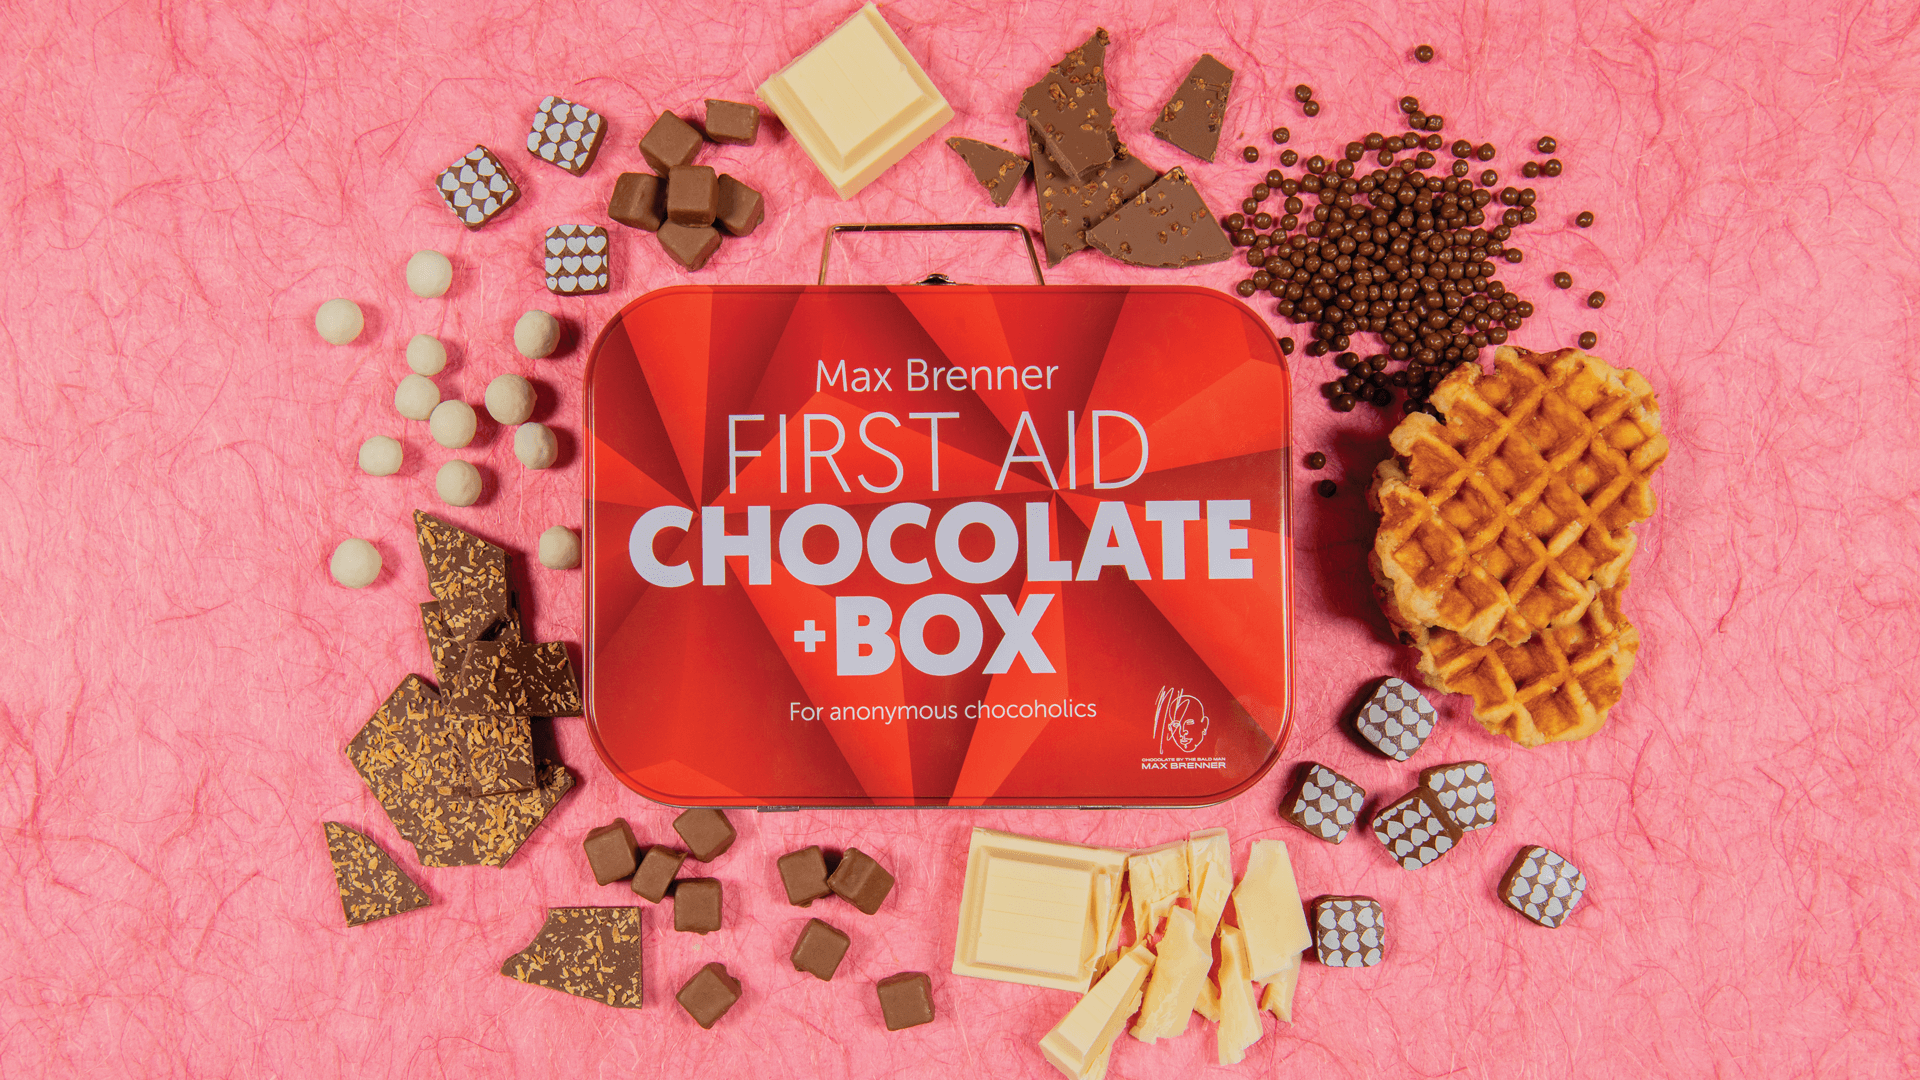 Marketing and Design Agency - Poloko - Northern Beaches - MaxBrenner